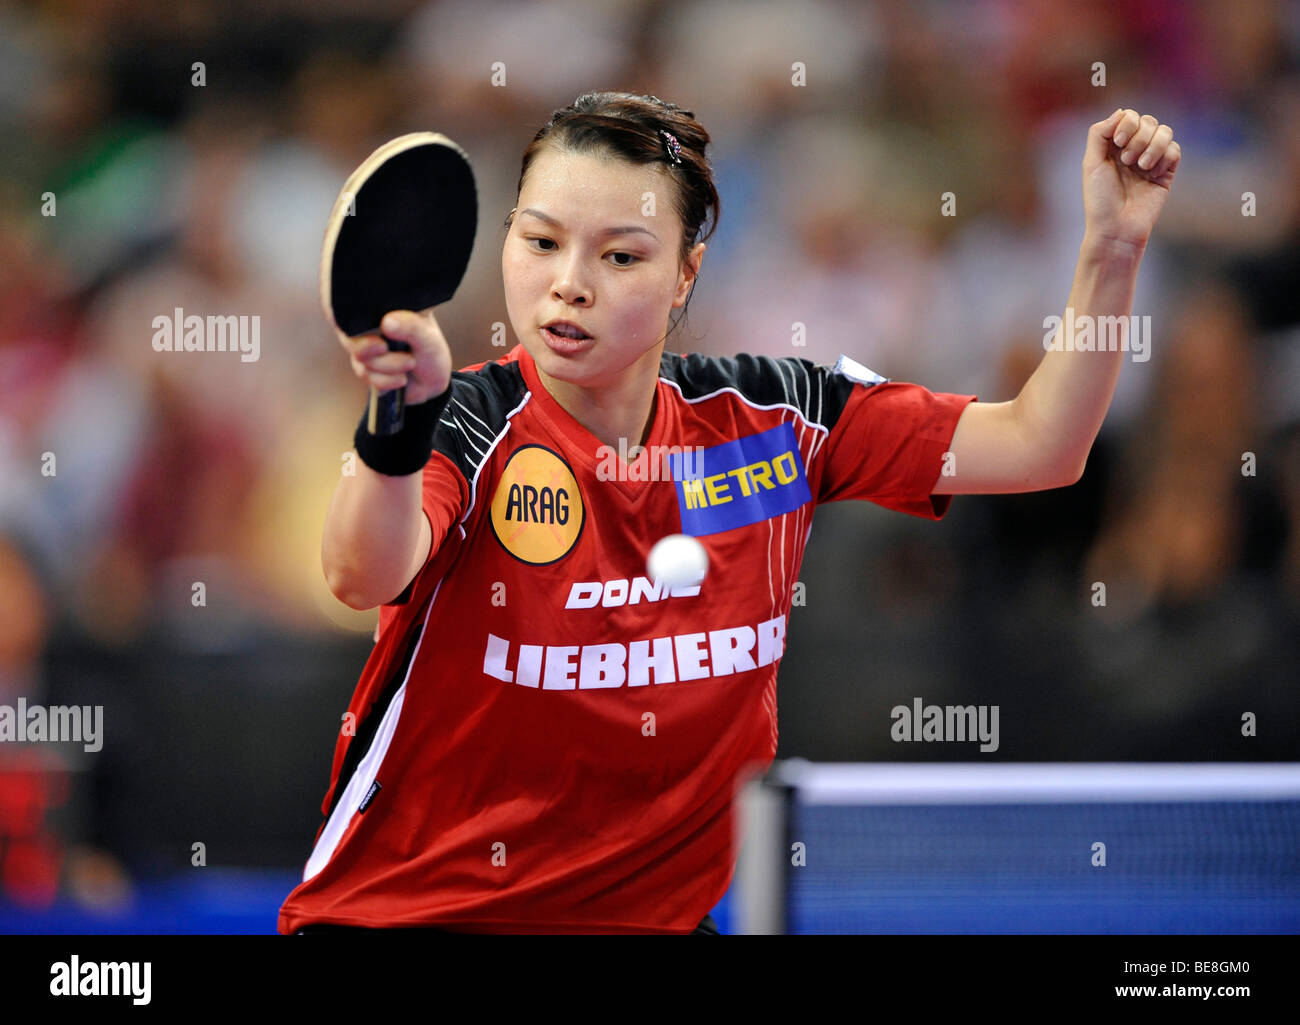 Campione Europeo Jiaduo WU, Germania, ping pong EM 2009, Porsche-Arena, Stoccarda, Baden-Wuerttemberg, Germania, Immagini Stock